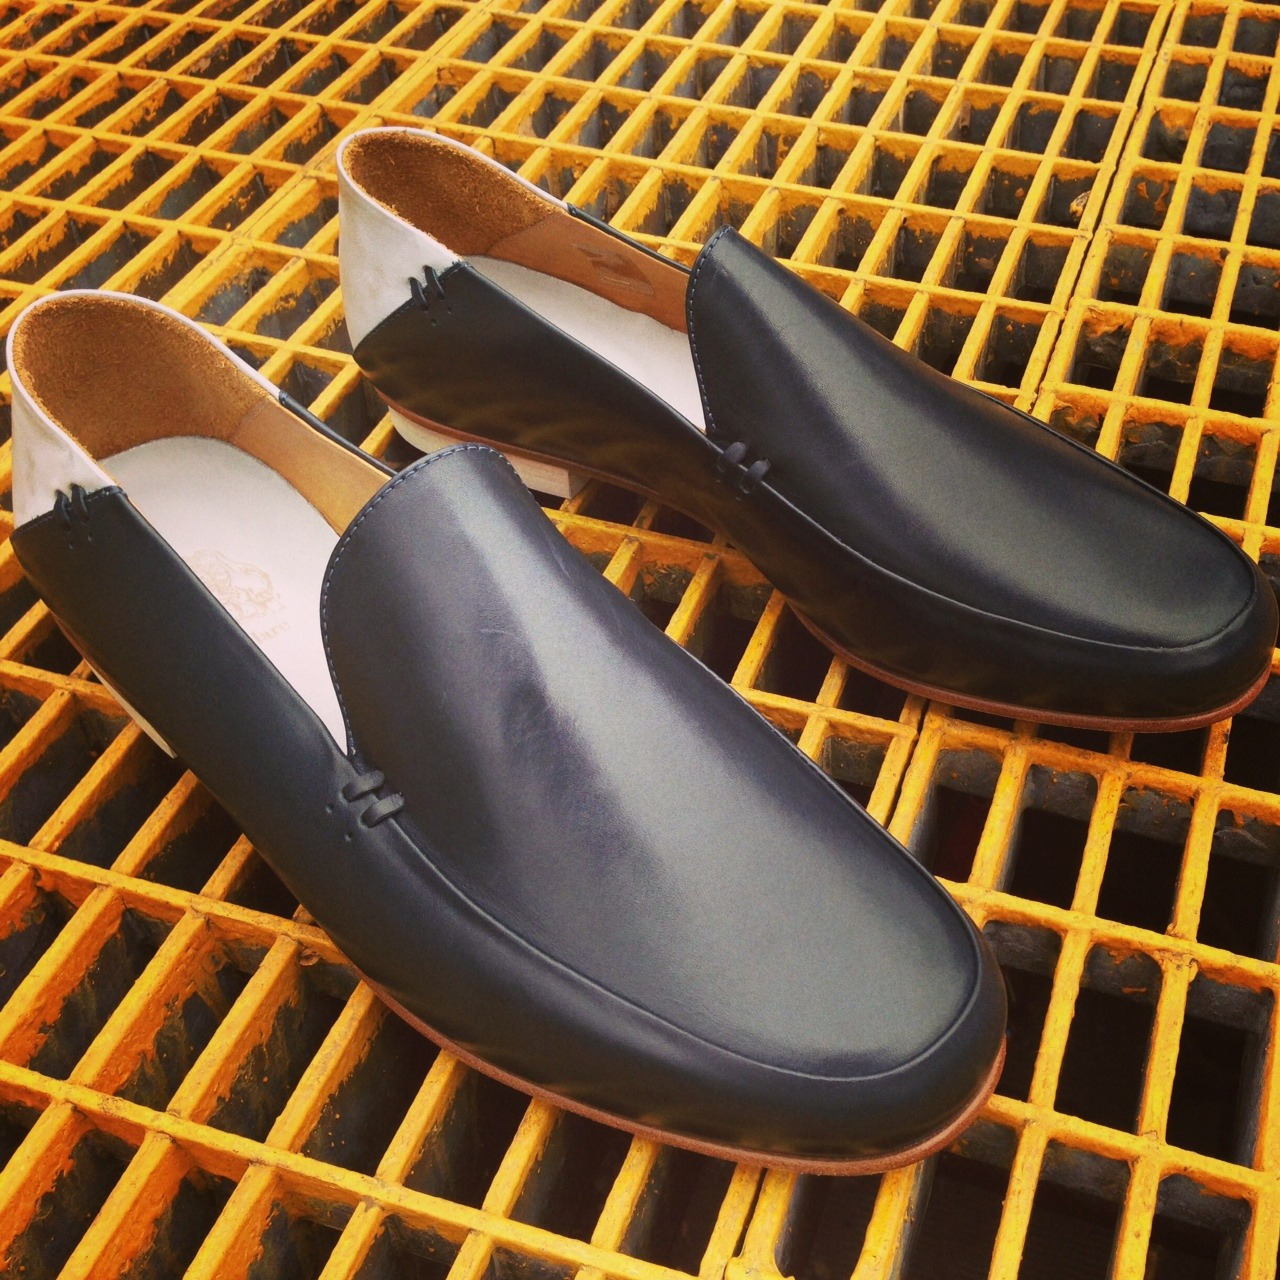 The Che Loafer from Mr. Hare